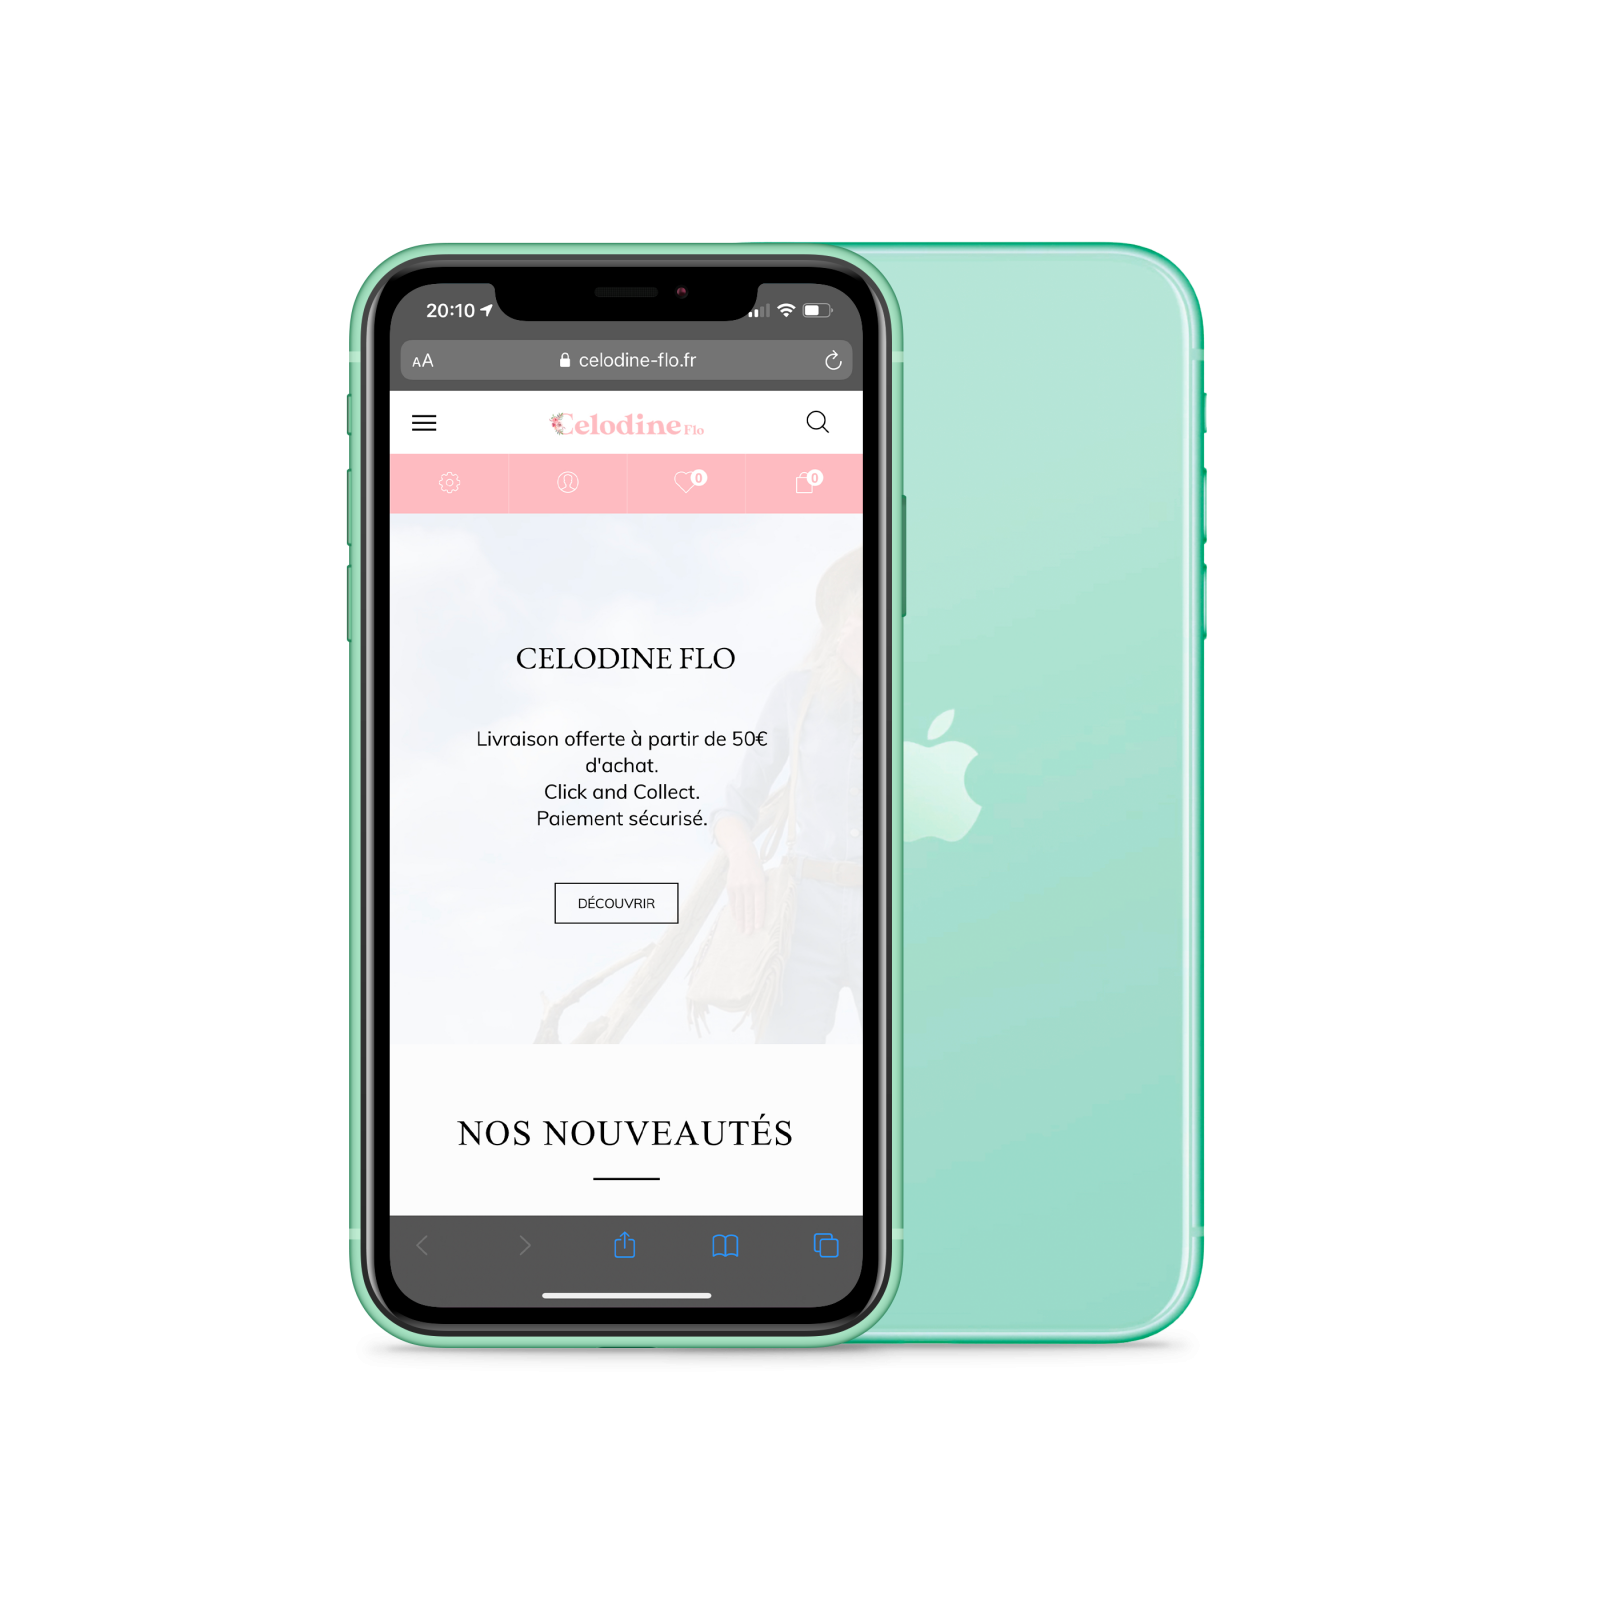 Mockup iPhone - boutique en ligne - Boutique Celodine Flo Saint-Georges-de-Didonne